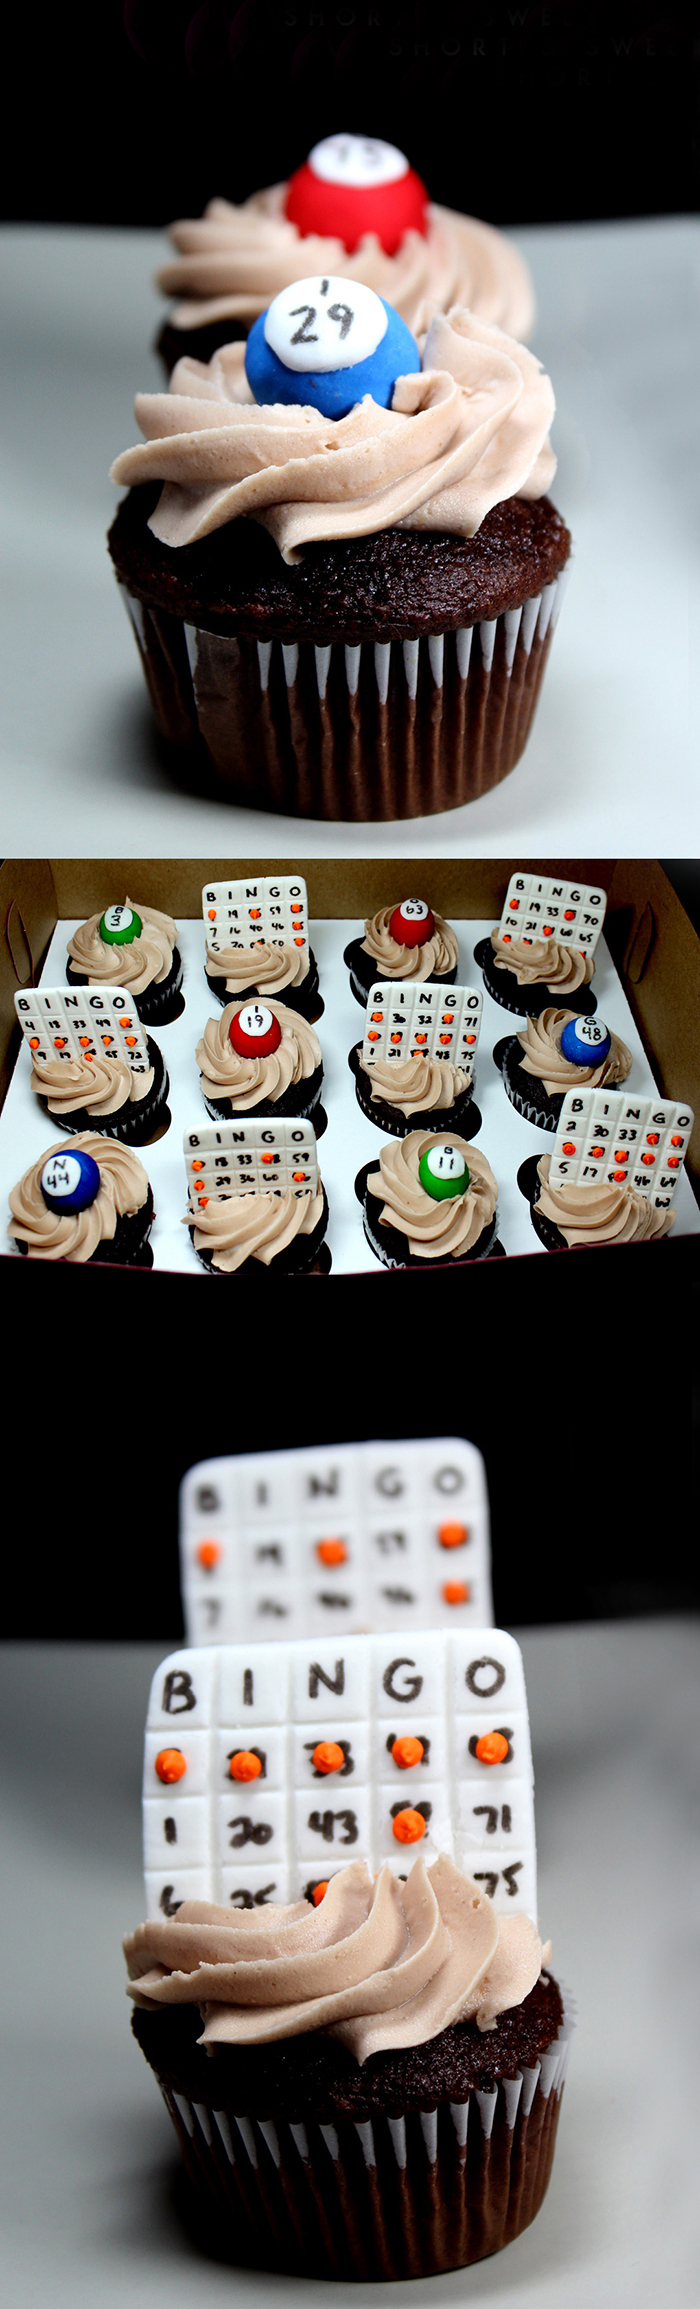 Adorable Bingo cupcakes!